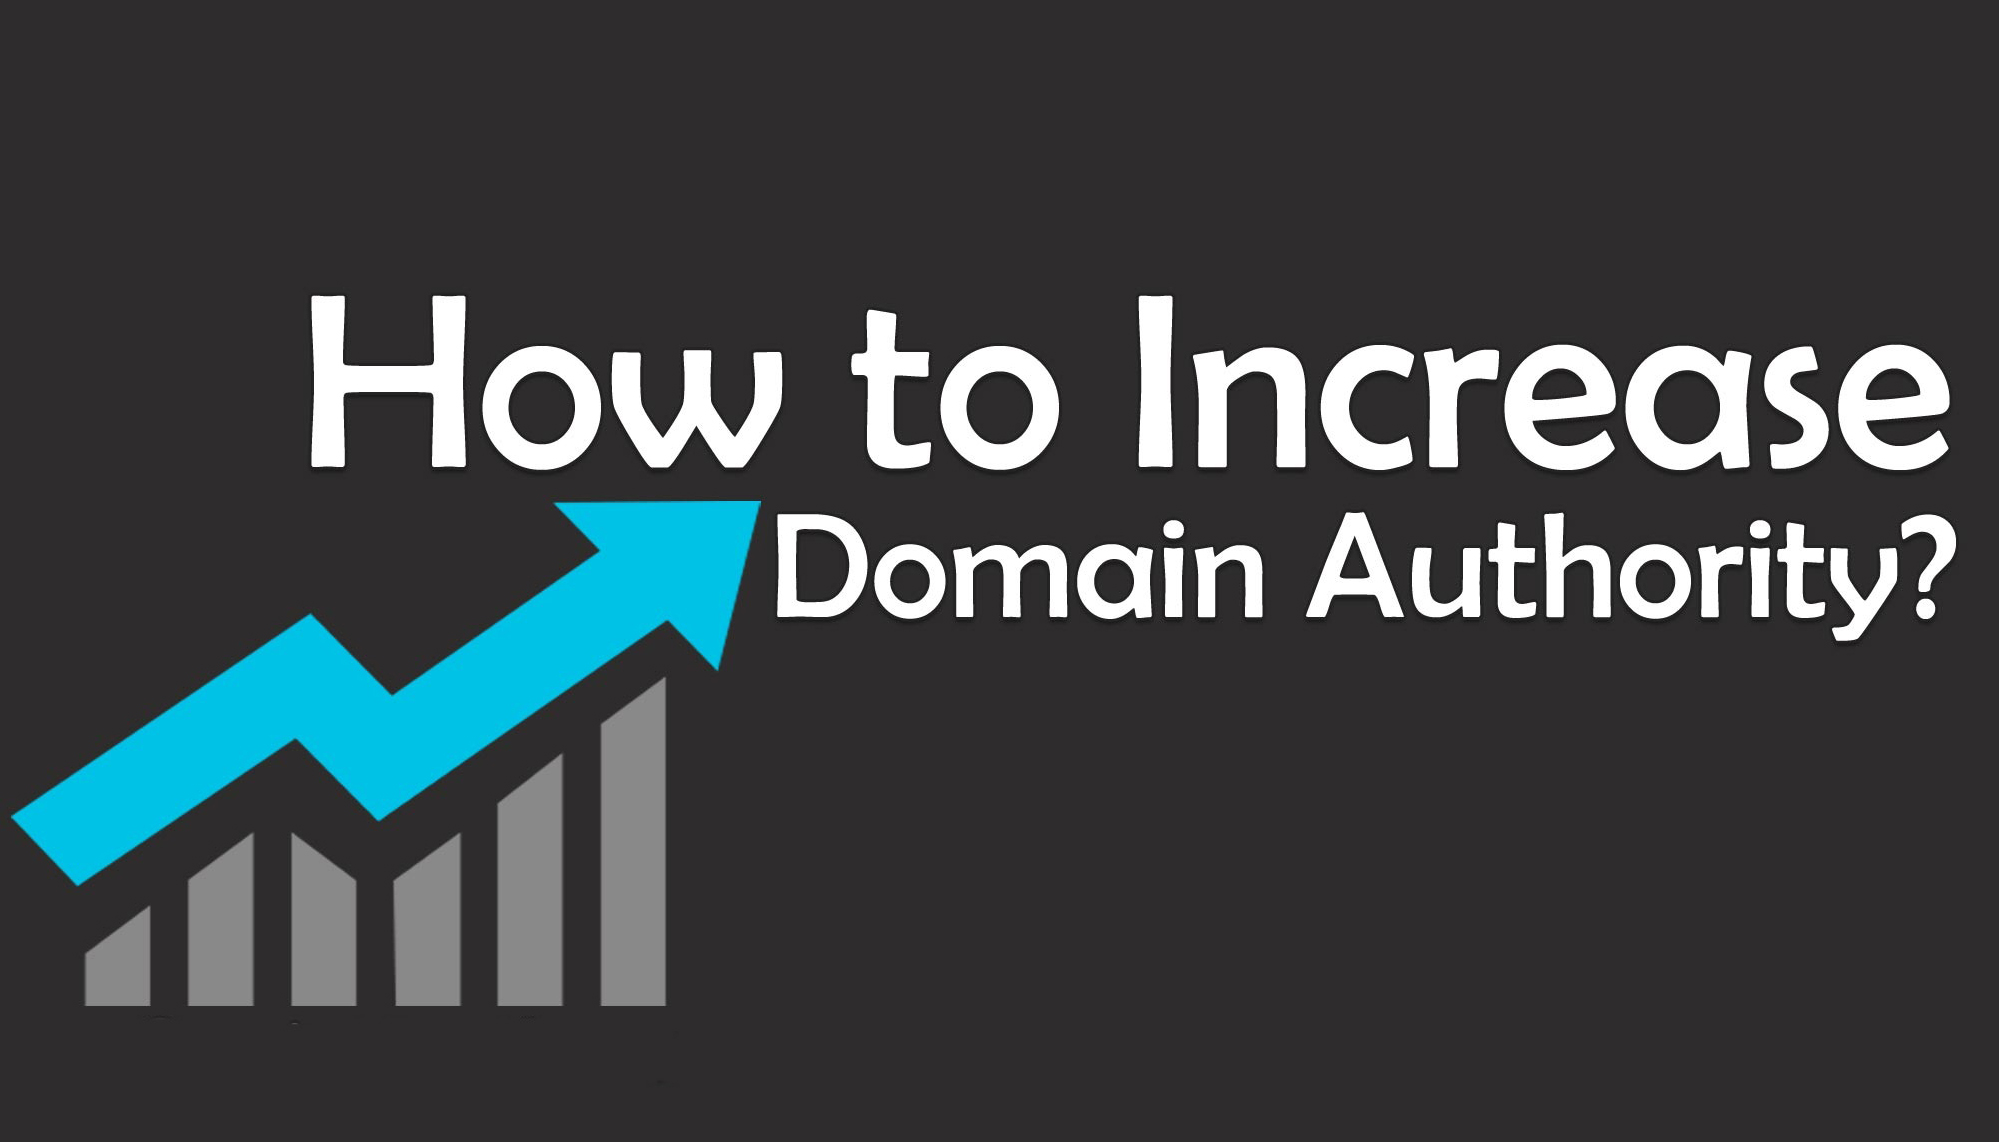 What is Domain Authority? Why it is most important for SEO?